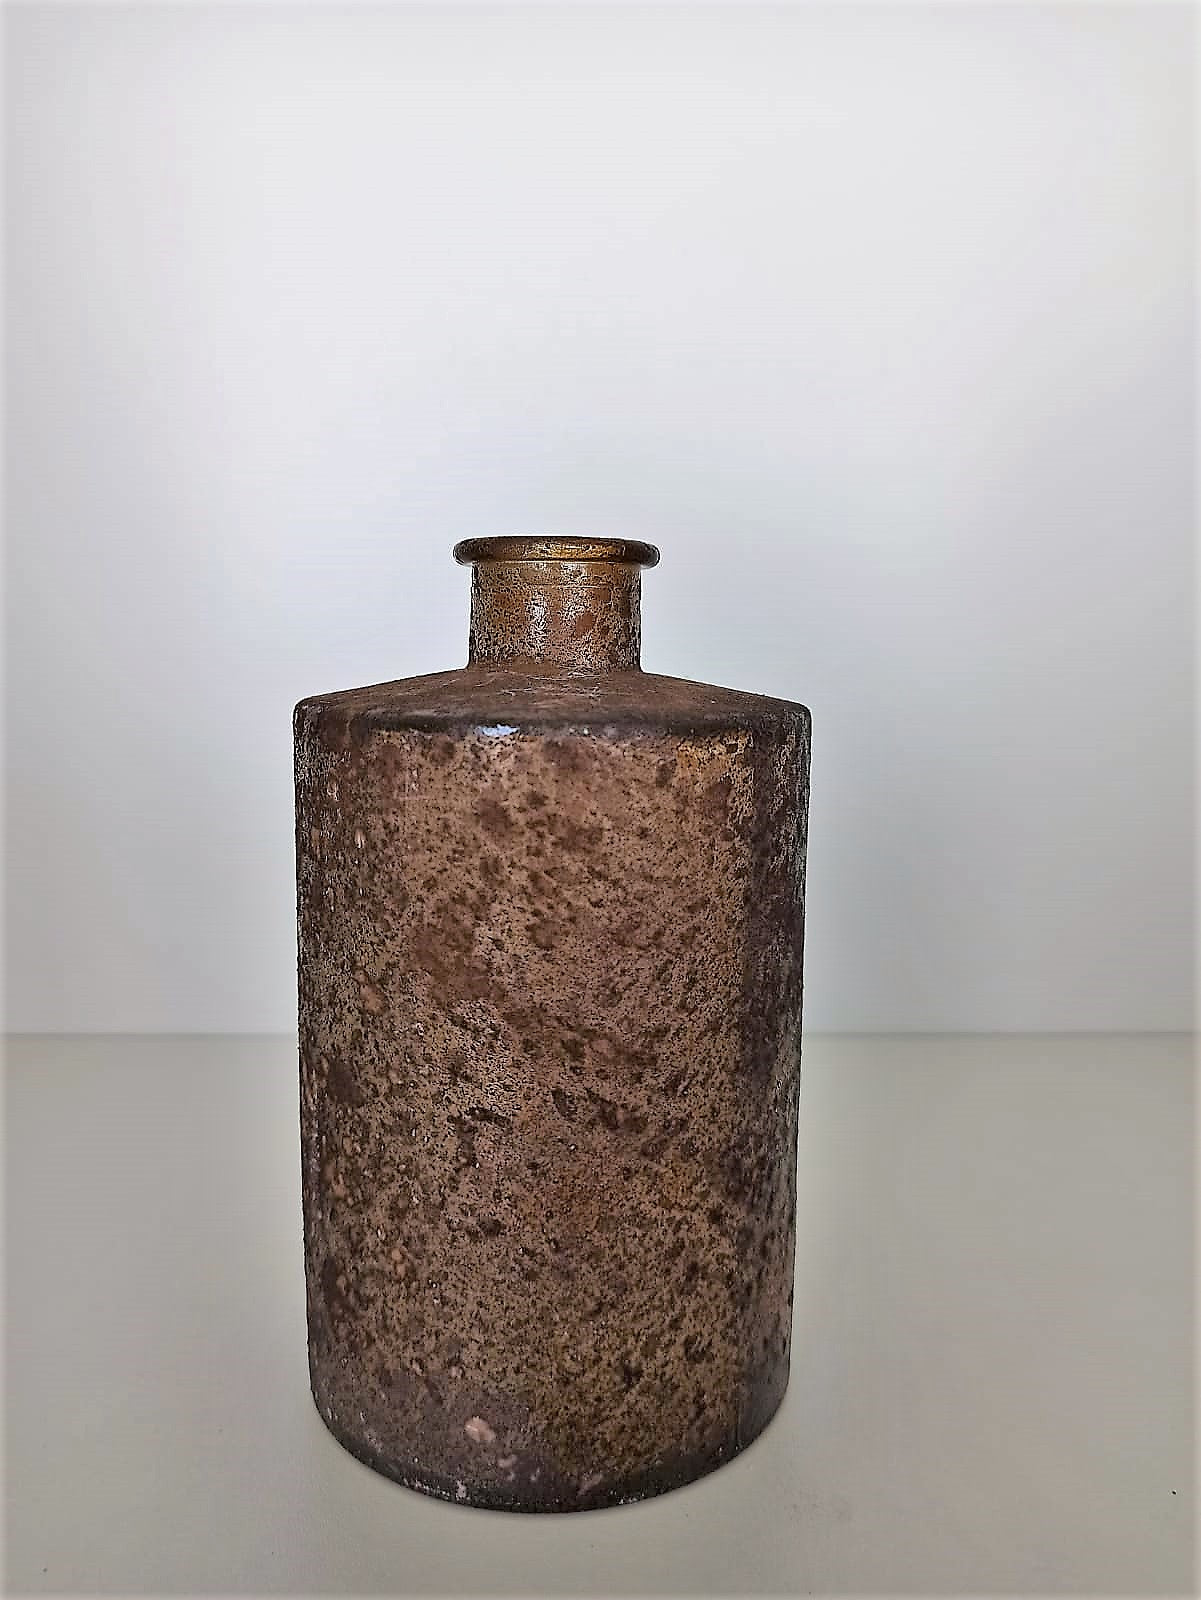 VASE RECYCLED GLASS BROWN 9X9X16CM